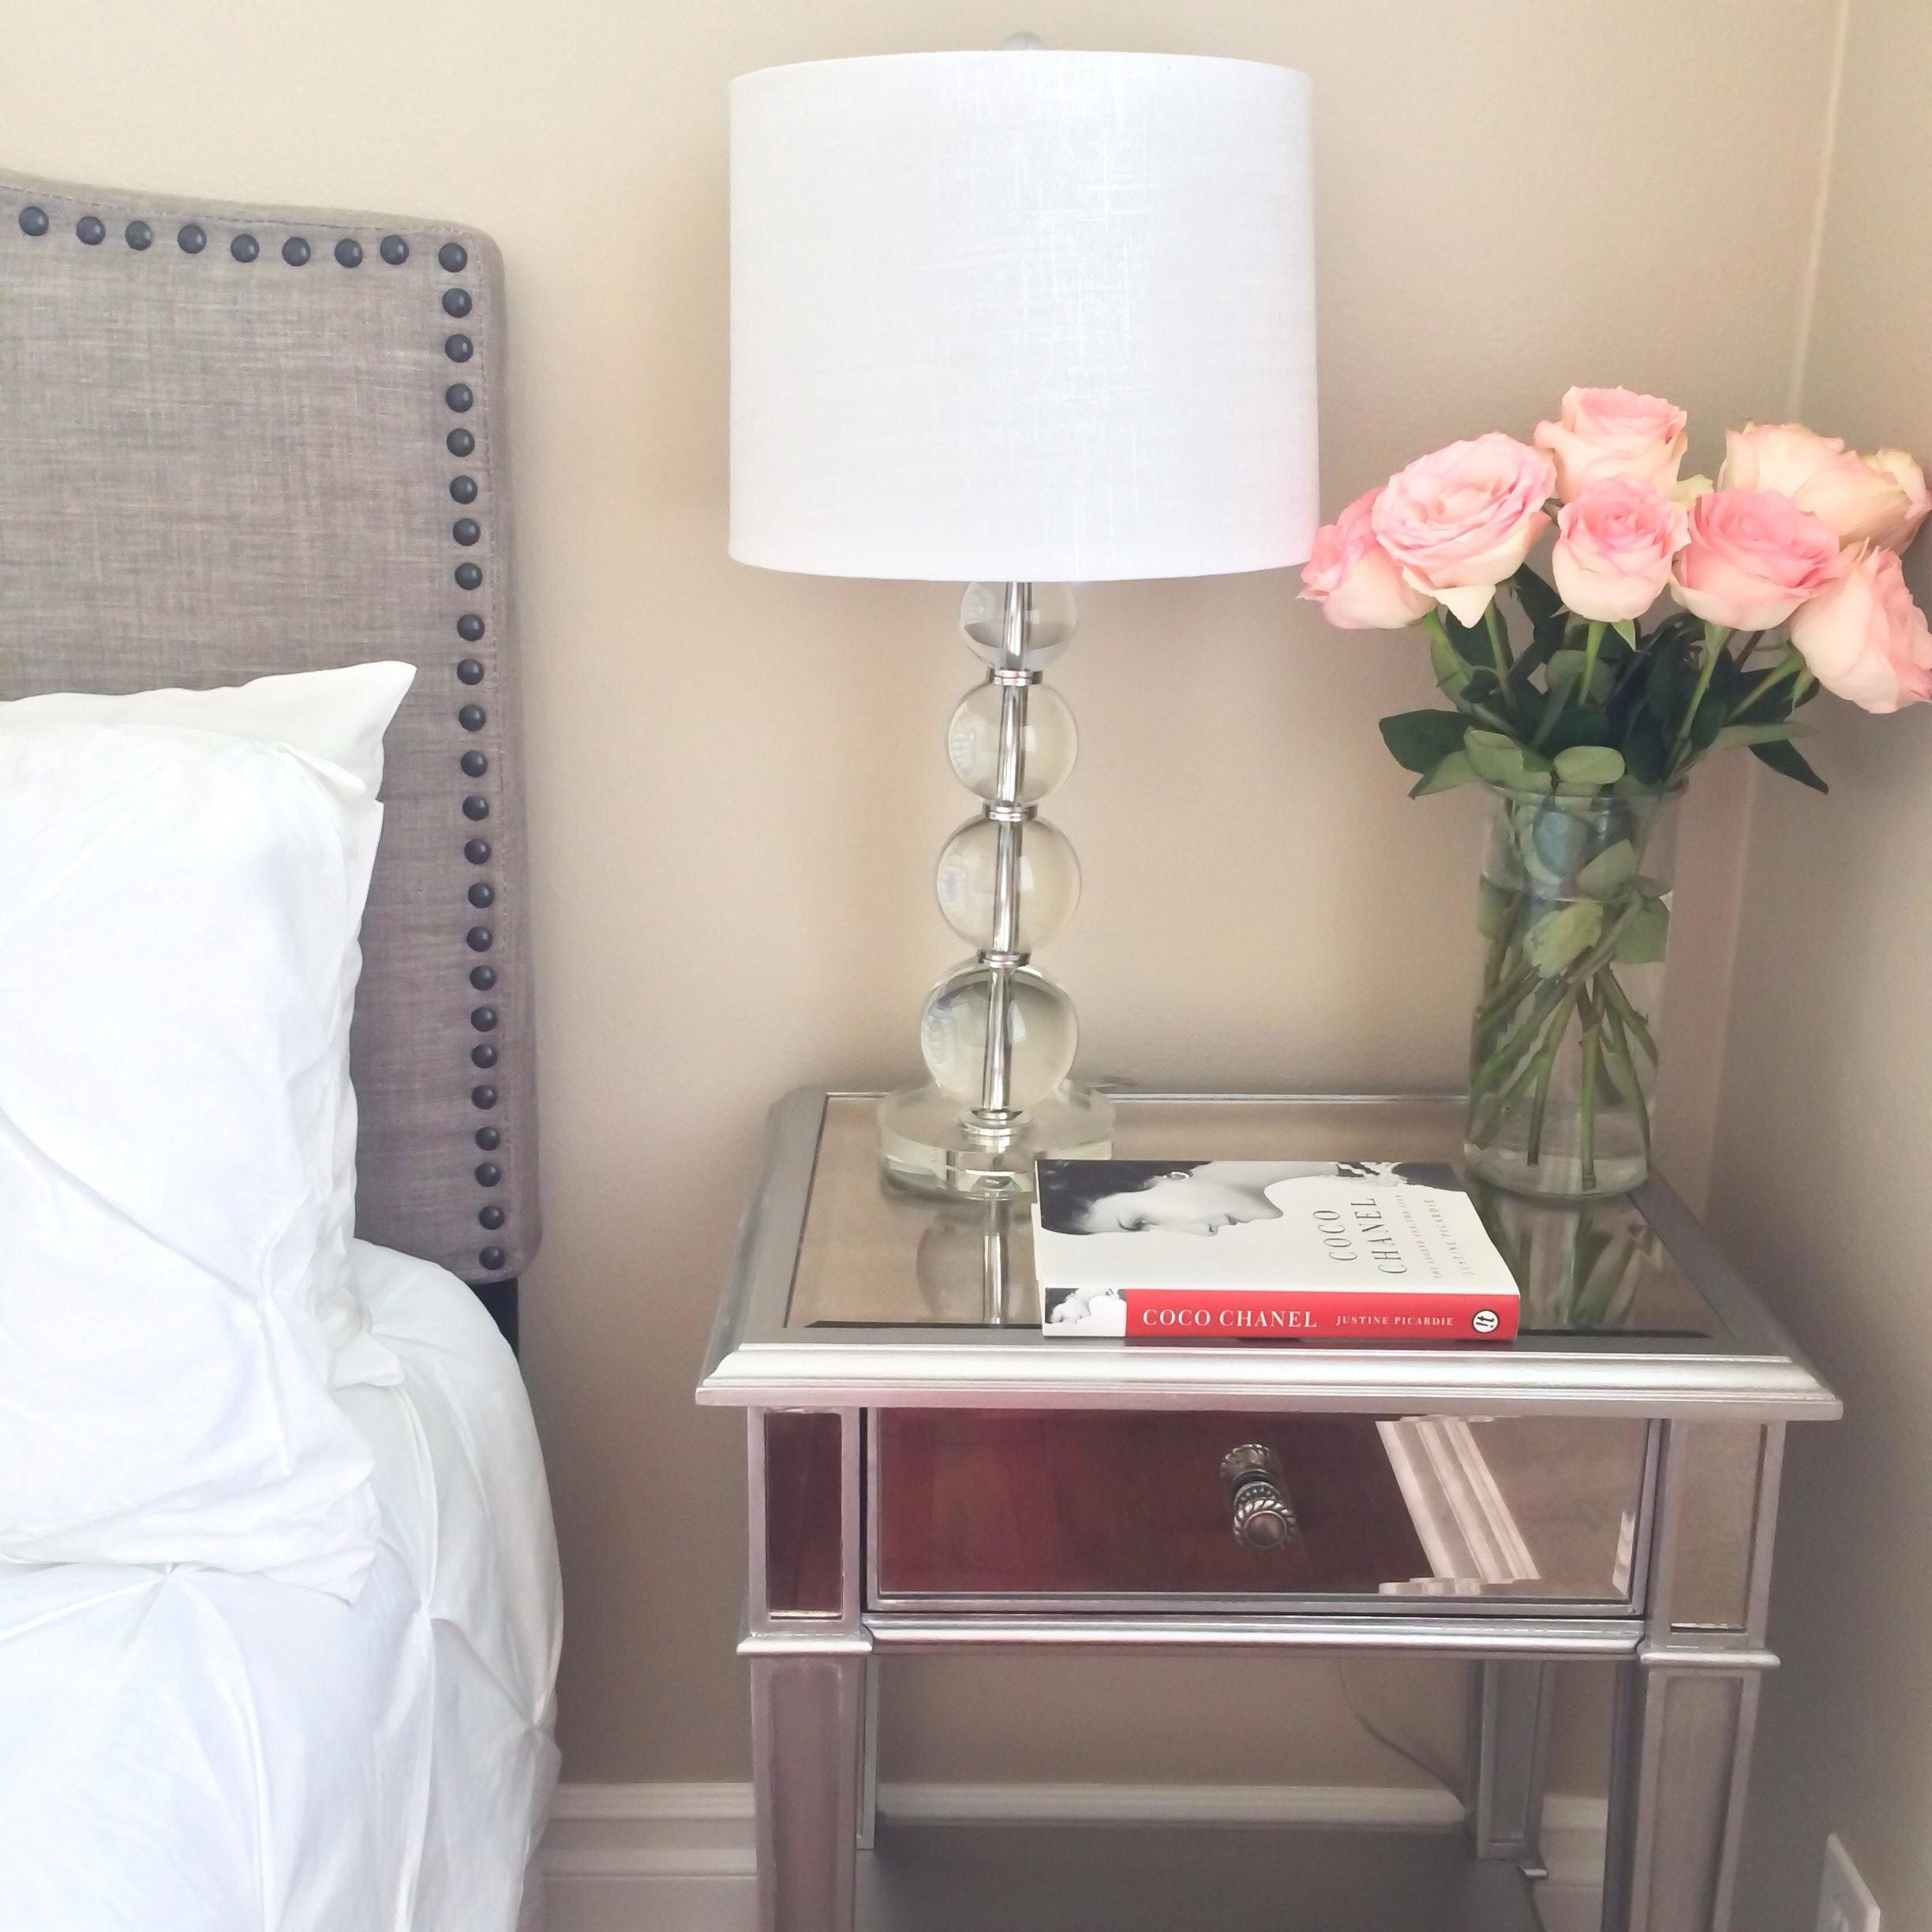 Best Nightstand Lamps For Bedroom Images With Breathtaking White Lamps Lights And Lamps With Pictures